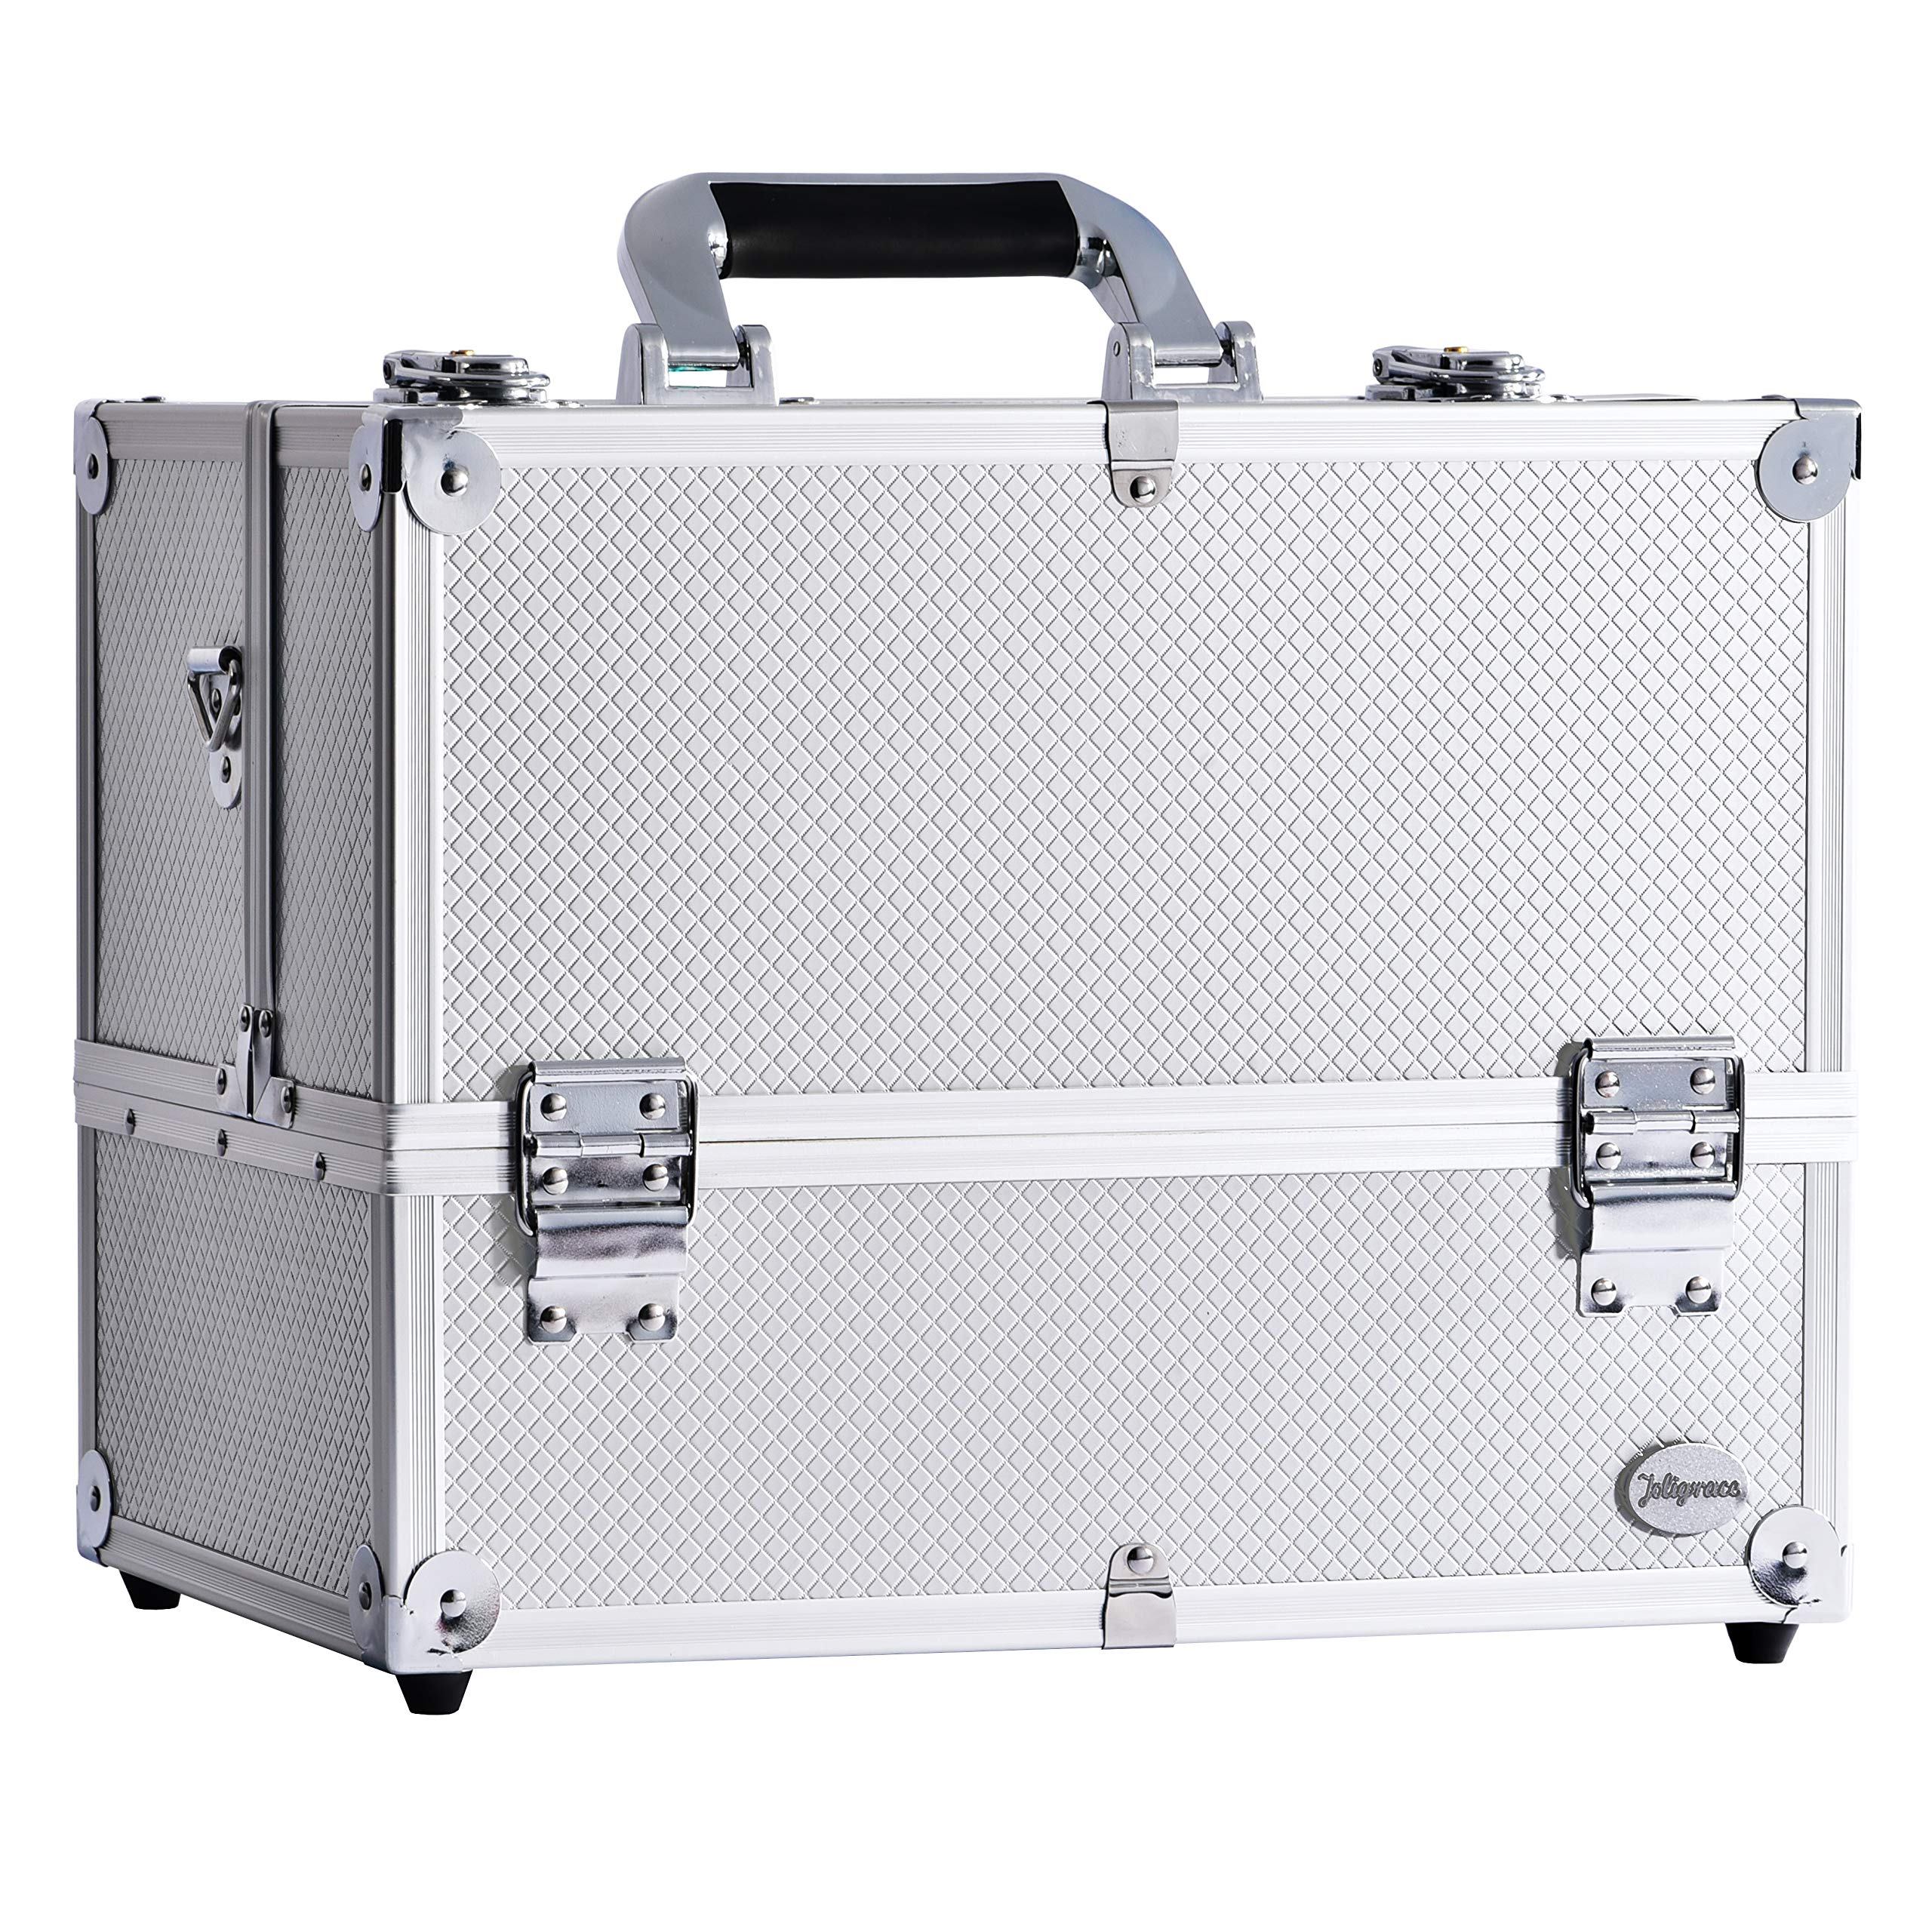 14'' Makeup Train Case Large 6 Tray Professional Organizer Box - Cosmetic Make Up Carrier with Lock & Key Carrying Strap and Adjustable Dividers for Studio Artist & Stylist Silver